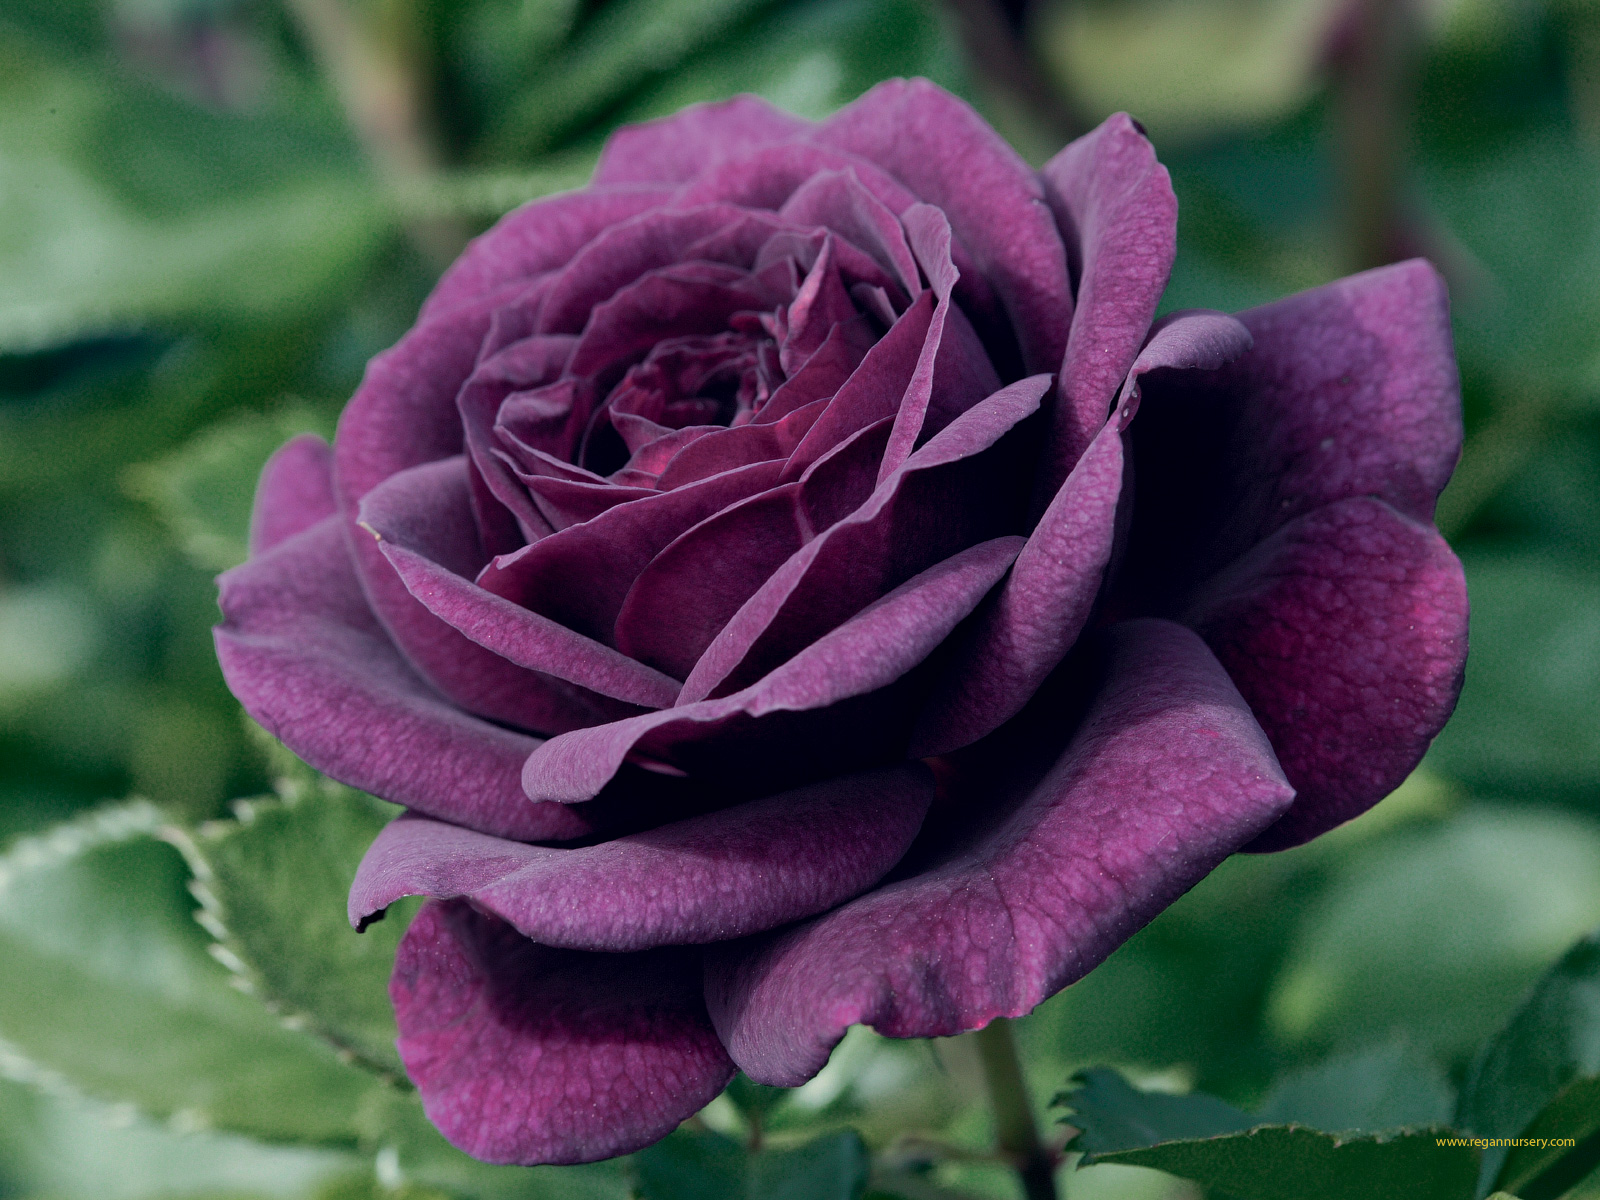 Purple Rose Flowers - Flower HD Wallpapers, Images, PIctures, Tattoos and Desktop Background